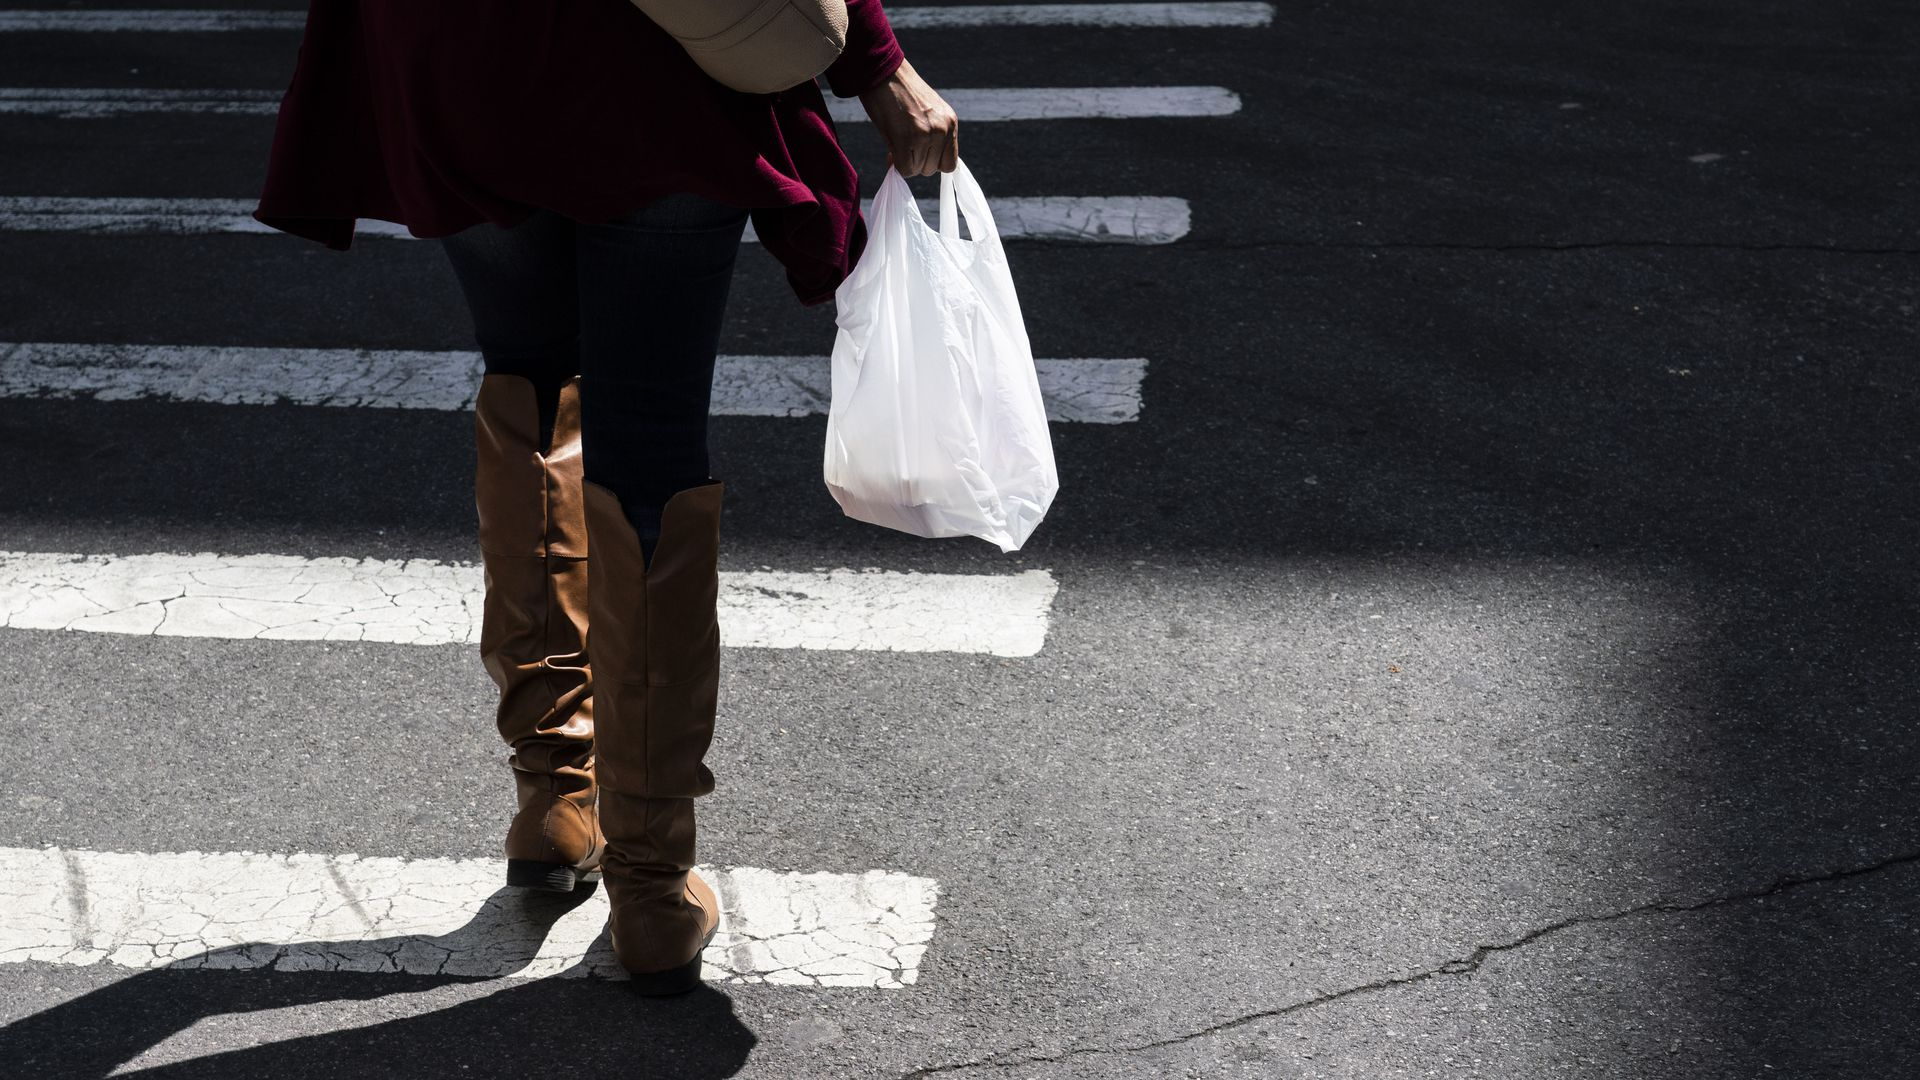 A photo of a person's legs walking along a crosswalk with a plastic shopping bag in their right hand